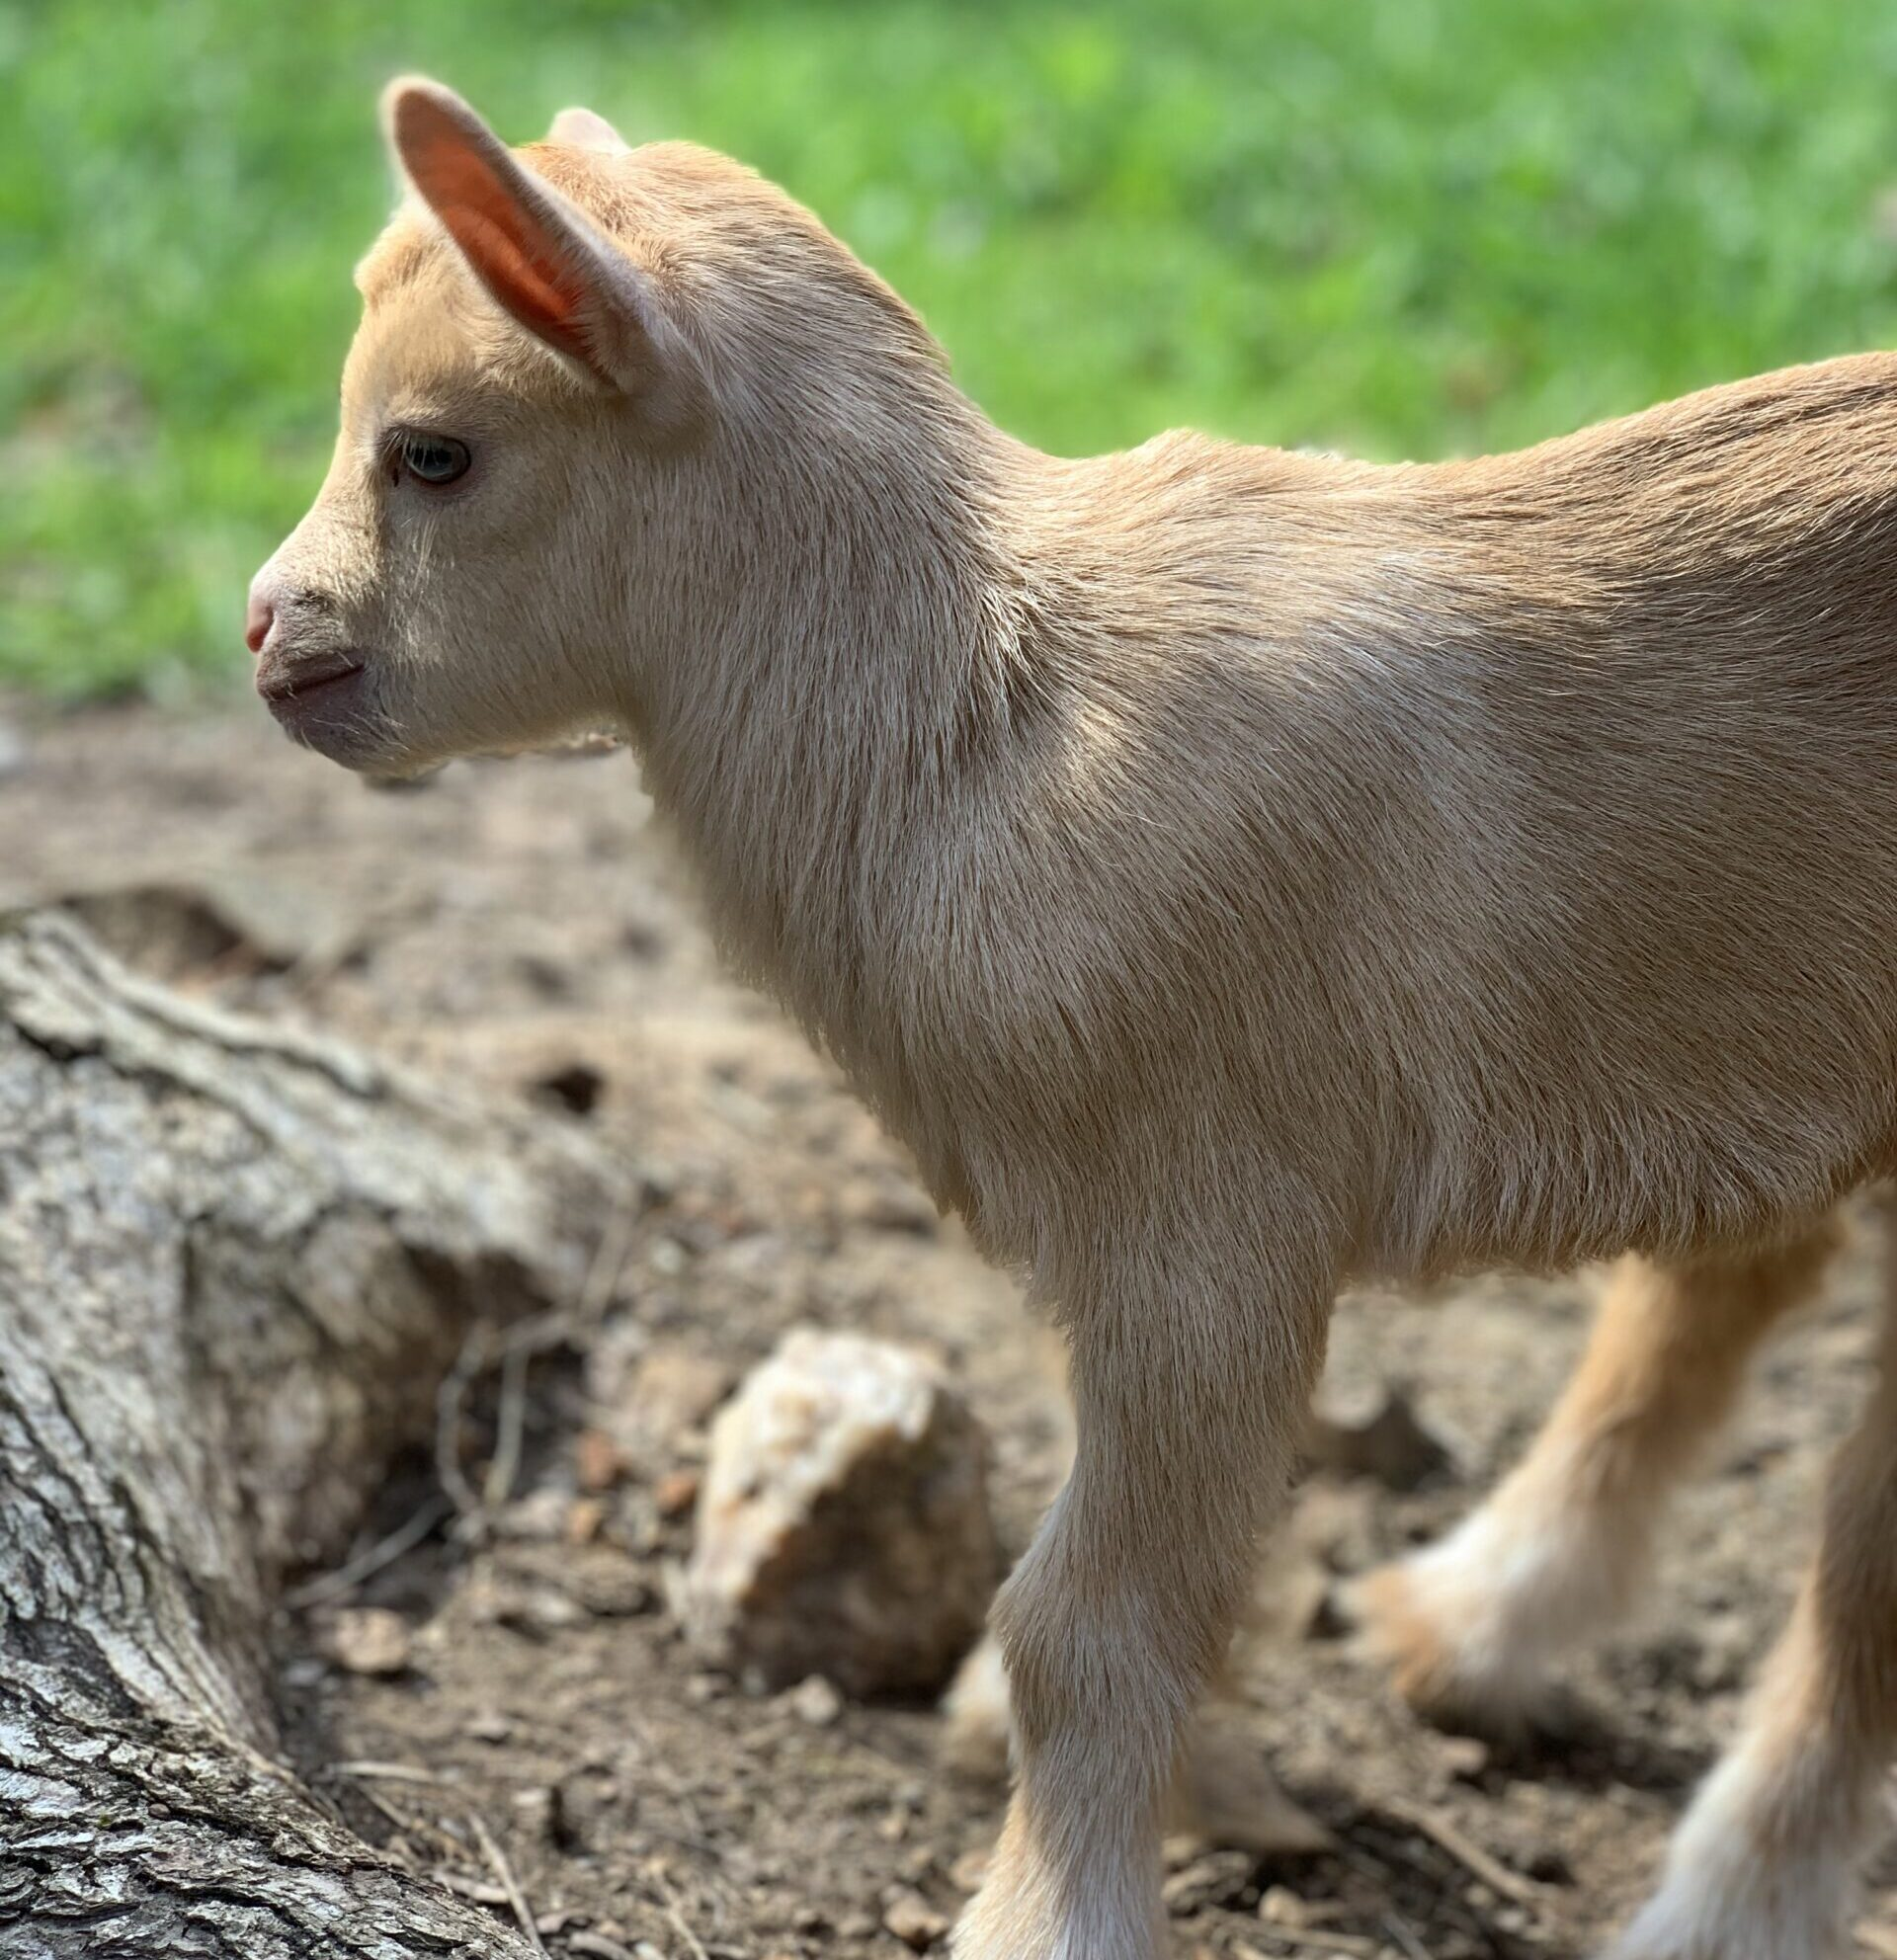 Shady Acres Farm NC, ADGA registered, Nigerian Dwarf Goat Kid, Nigerian Dwarf Goat for sale, Nigerian Dwarf Goats North Carolina, Nigerian Dwarf Goats NC, Nigerian Dwarf Goats Thomasville, Goats for sale North Carolina, Goats for sale, Goats for sale Thomasville